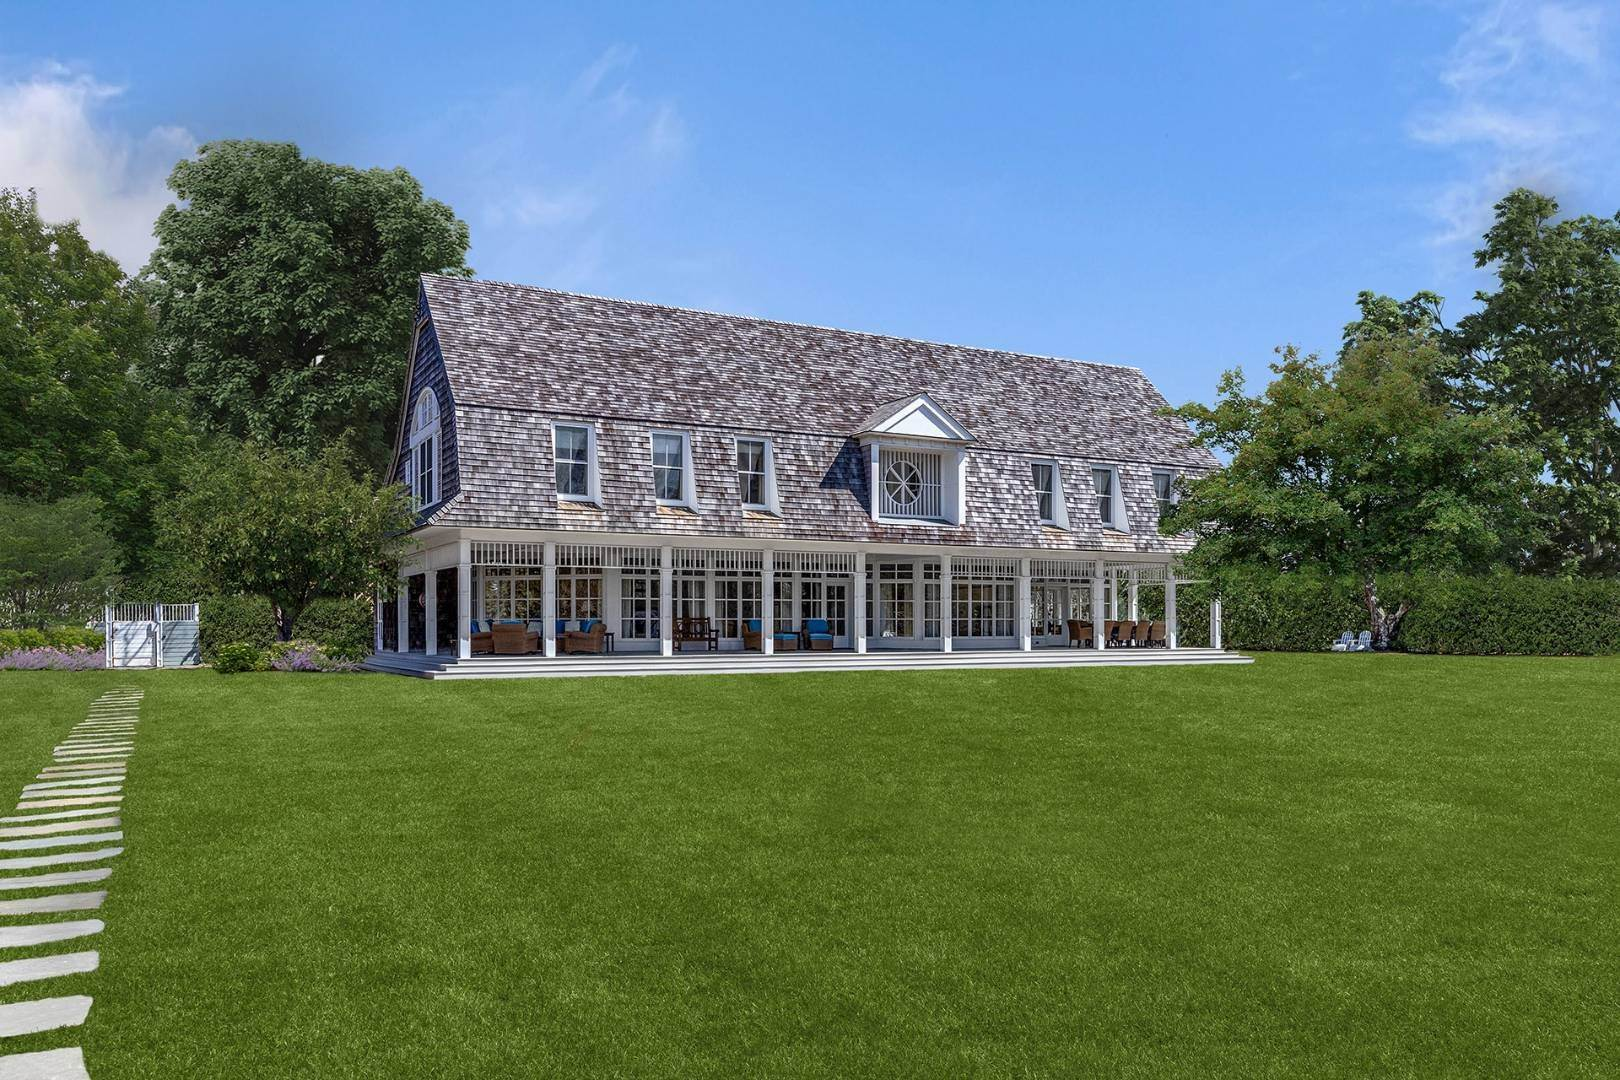 Single Family Home at 72 Lily Pond Lane, East Hampton, Ny 72 Lily Pond Ln, East Hampton, NY 11937